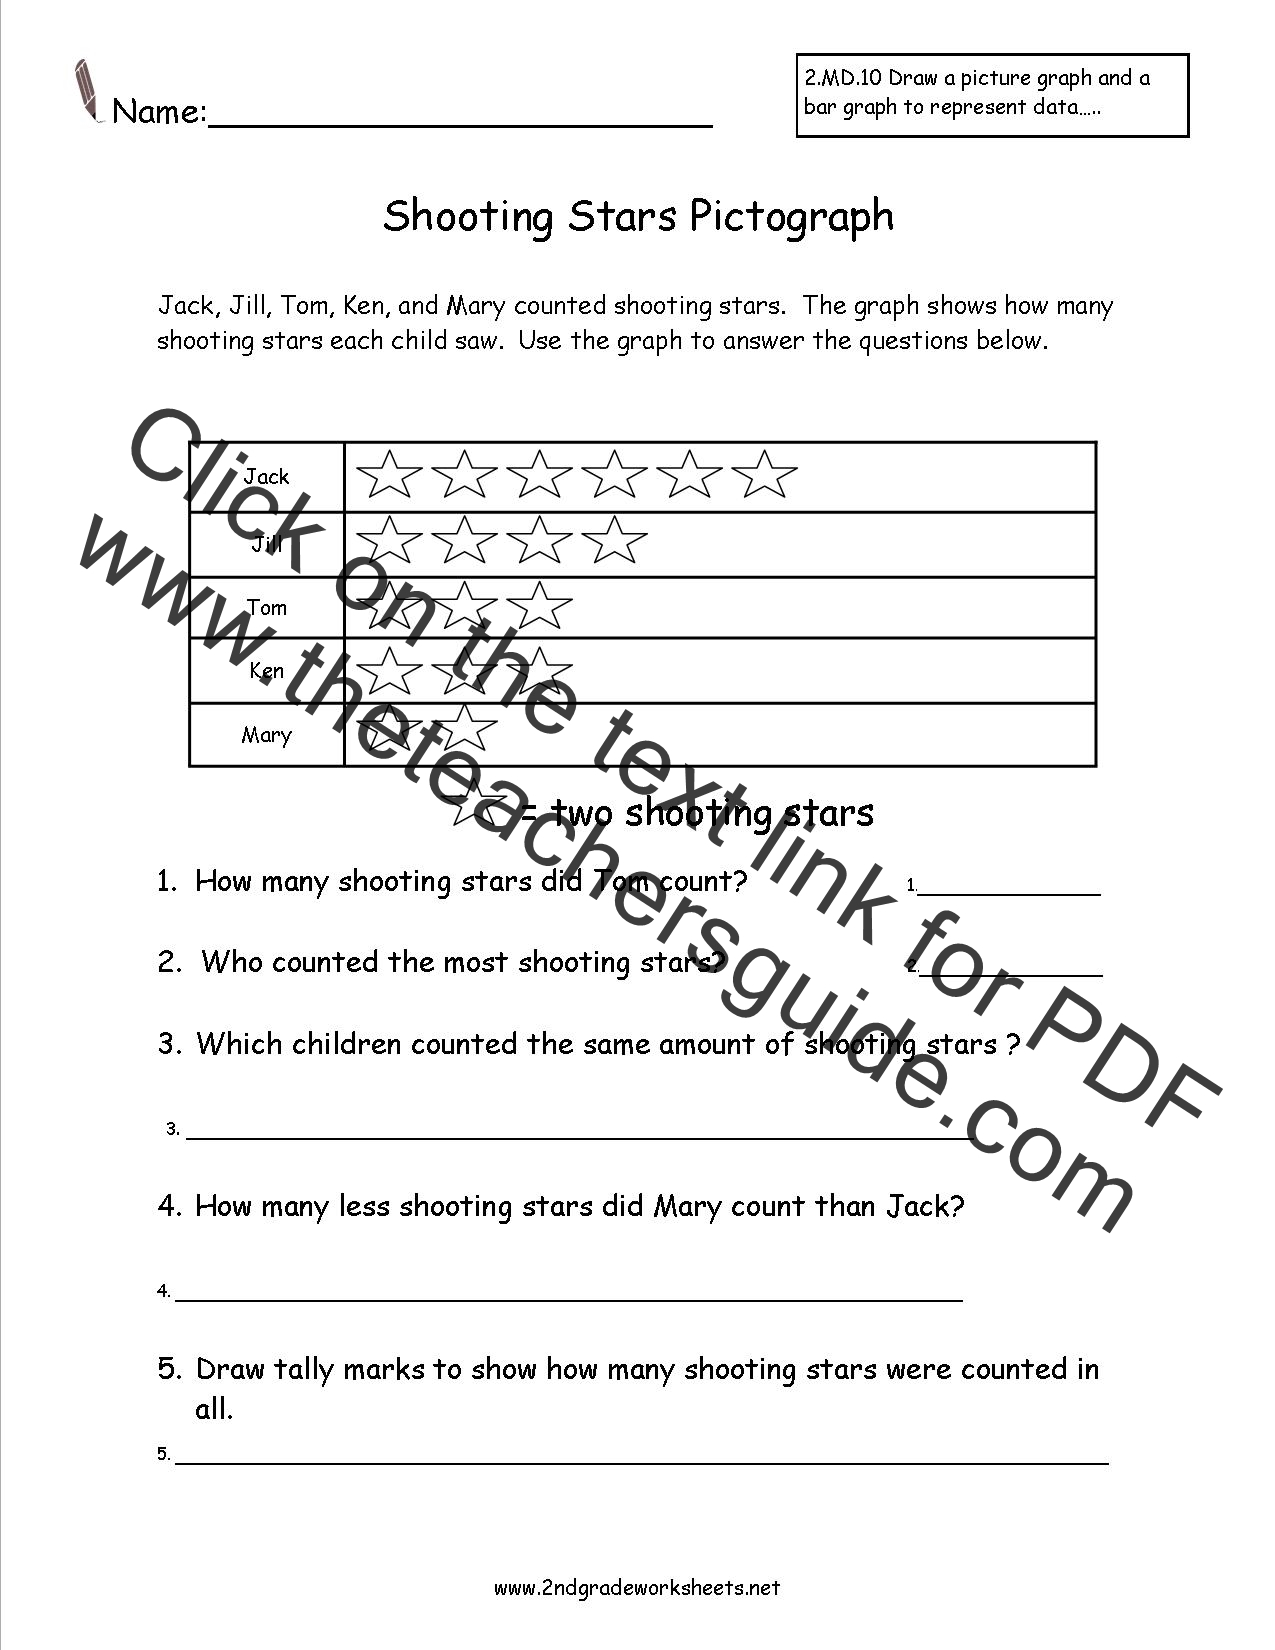 Worksheets Science Worksheets For 3rd Grade second grade reading and creating pictograph worksheets shooting stars worksheet